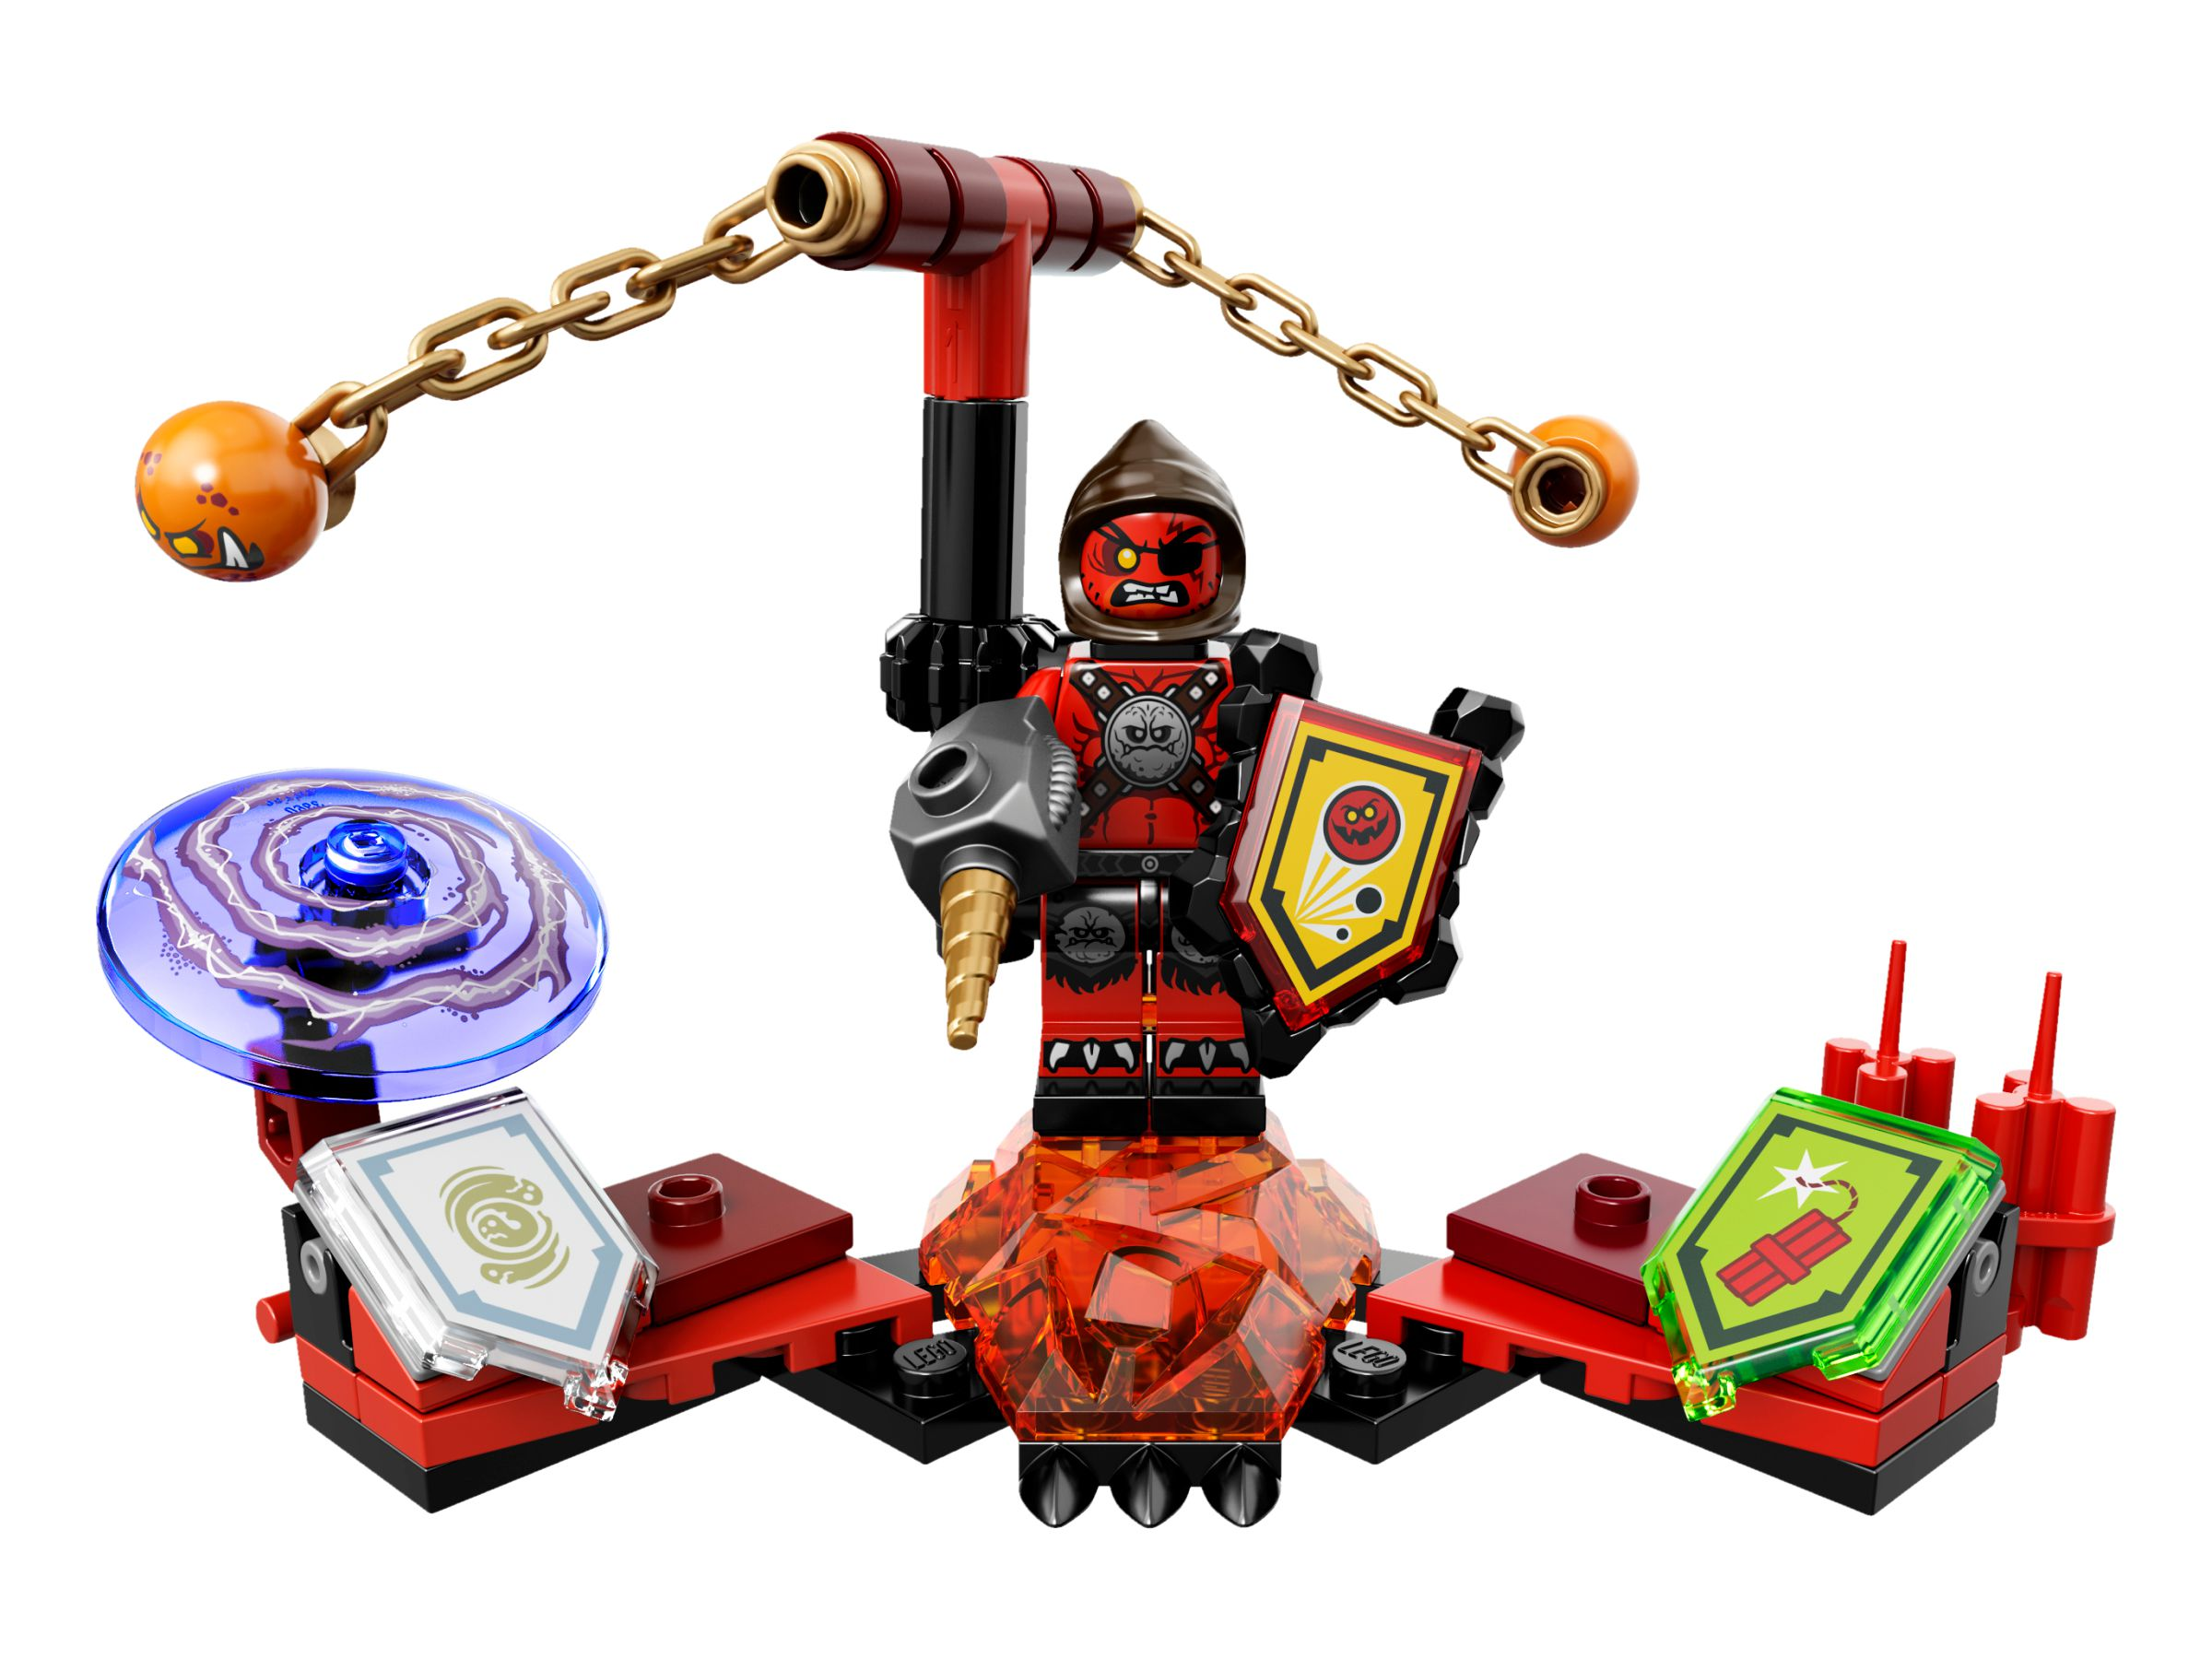 LEGO Nexo Knights 70334 Ultimativer Monster-Meister LEGO_70334_alt2.jpg